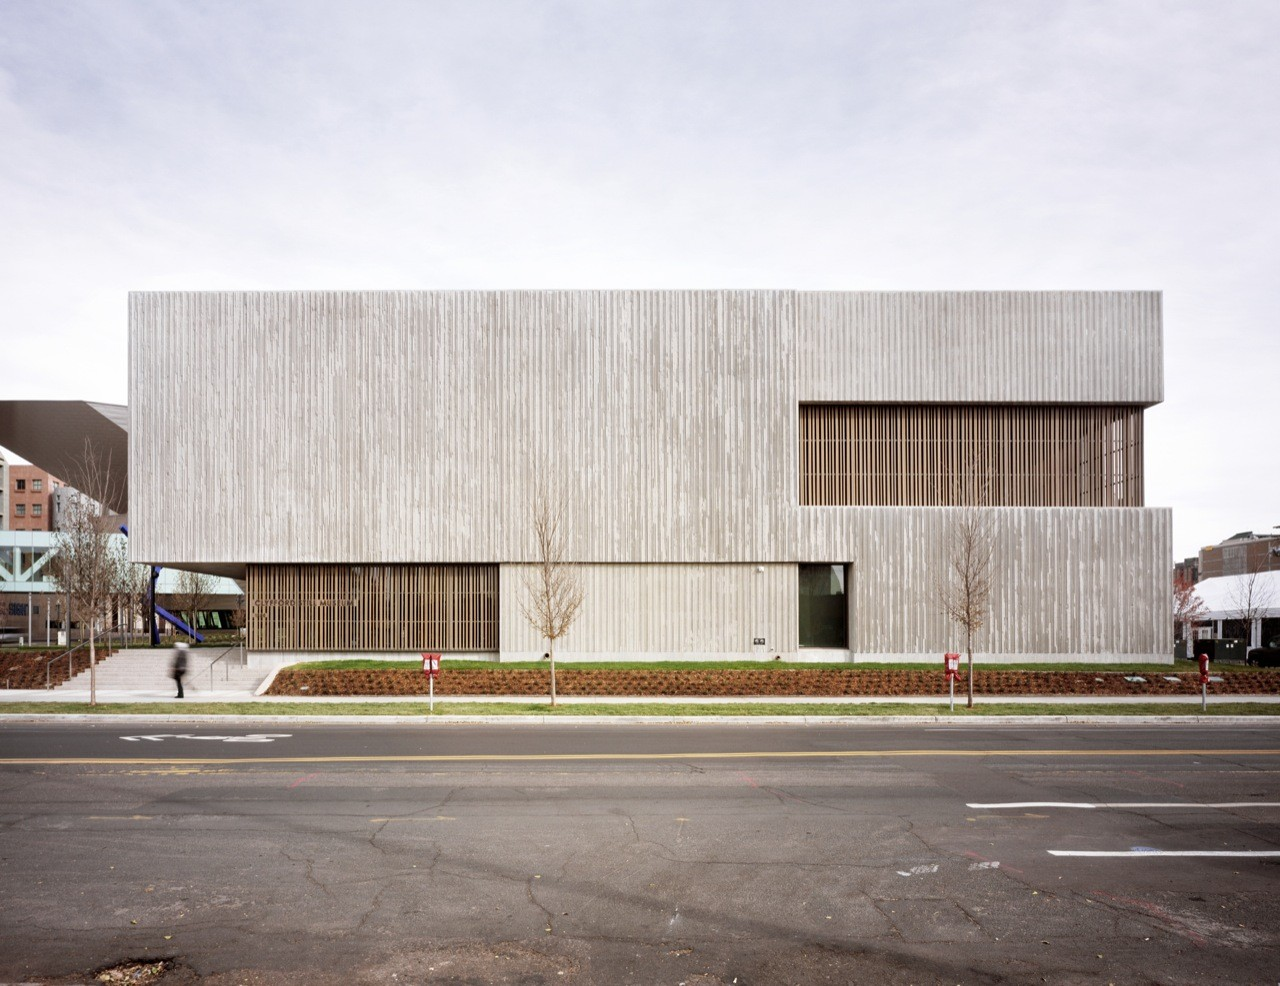 Clyfford still museum allied works architecture archdaily for Architecture elevation